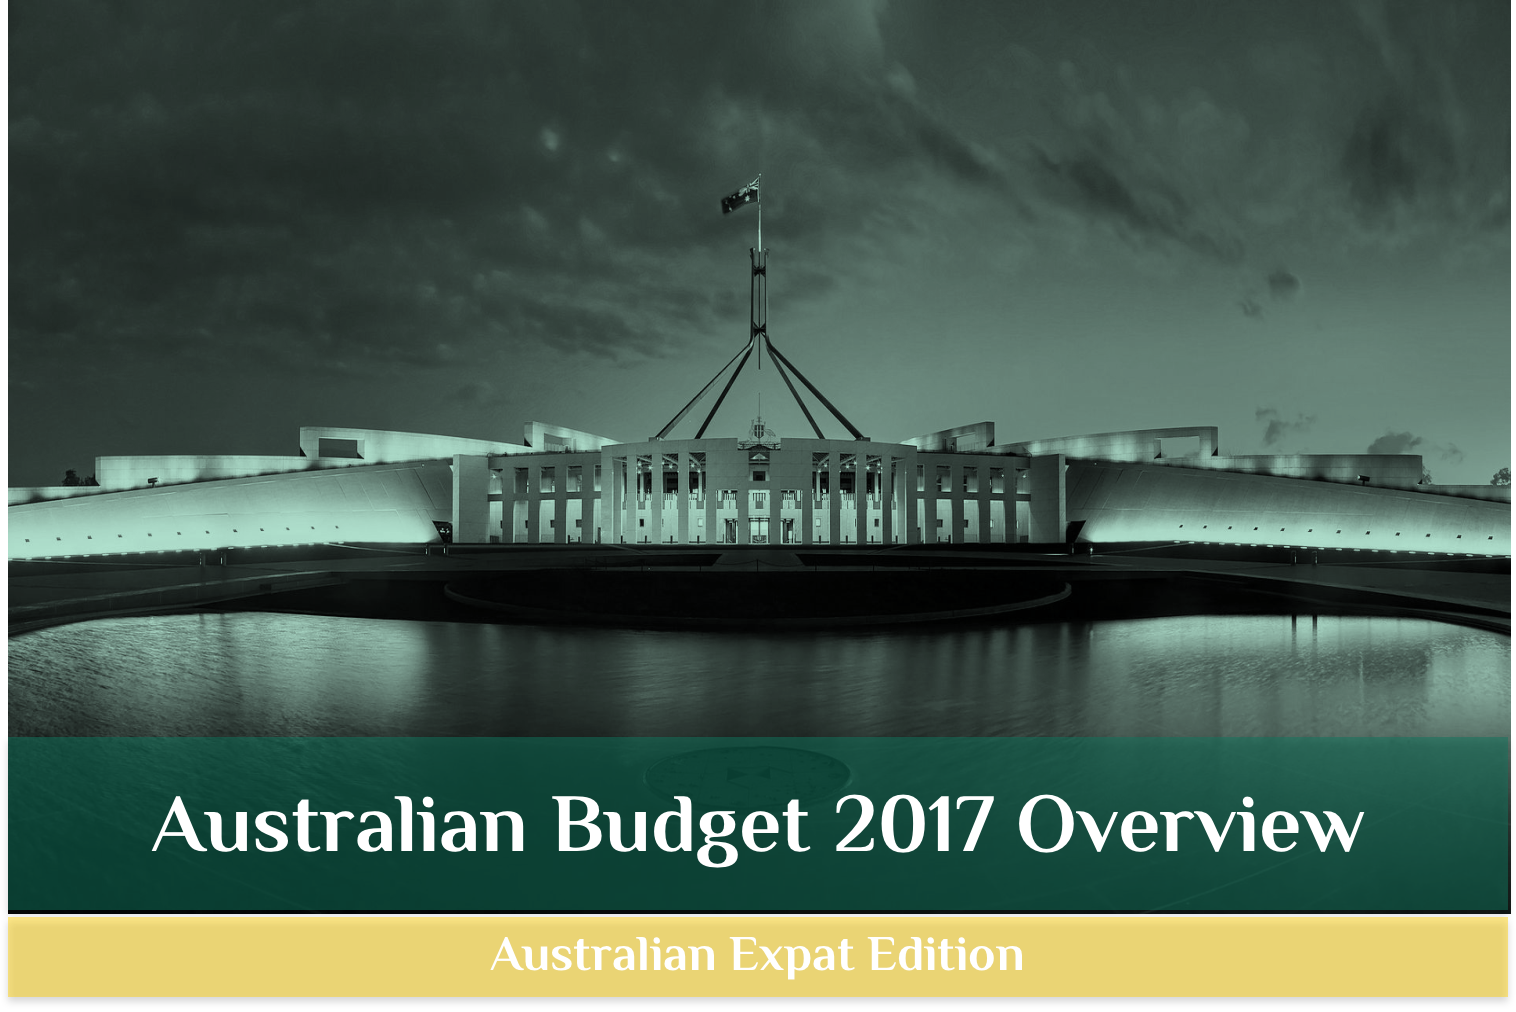 Australian Budget 2017 Overview - Australian Expatriate Group - Fee-Based Financial Planners for Australian Expats in SIngapore